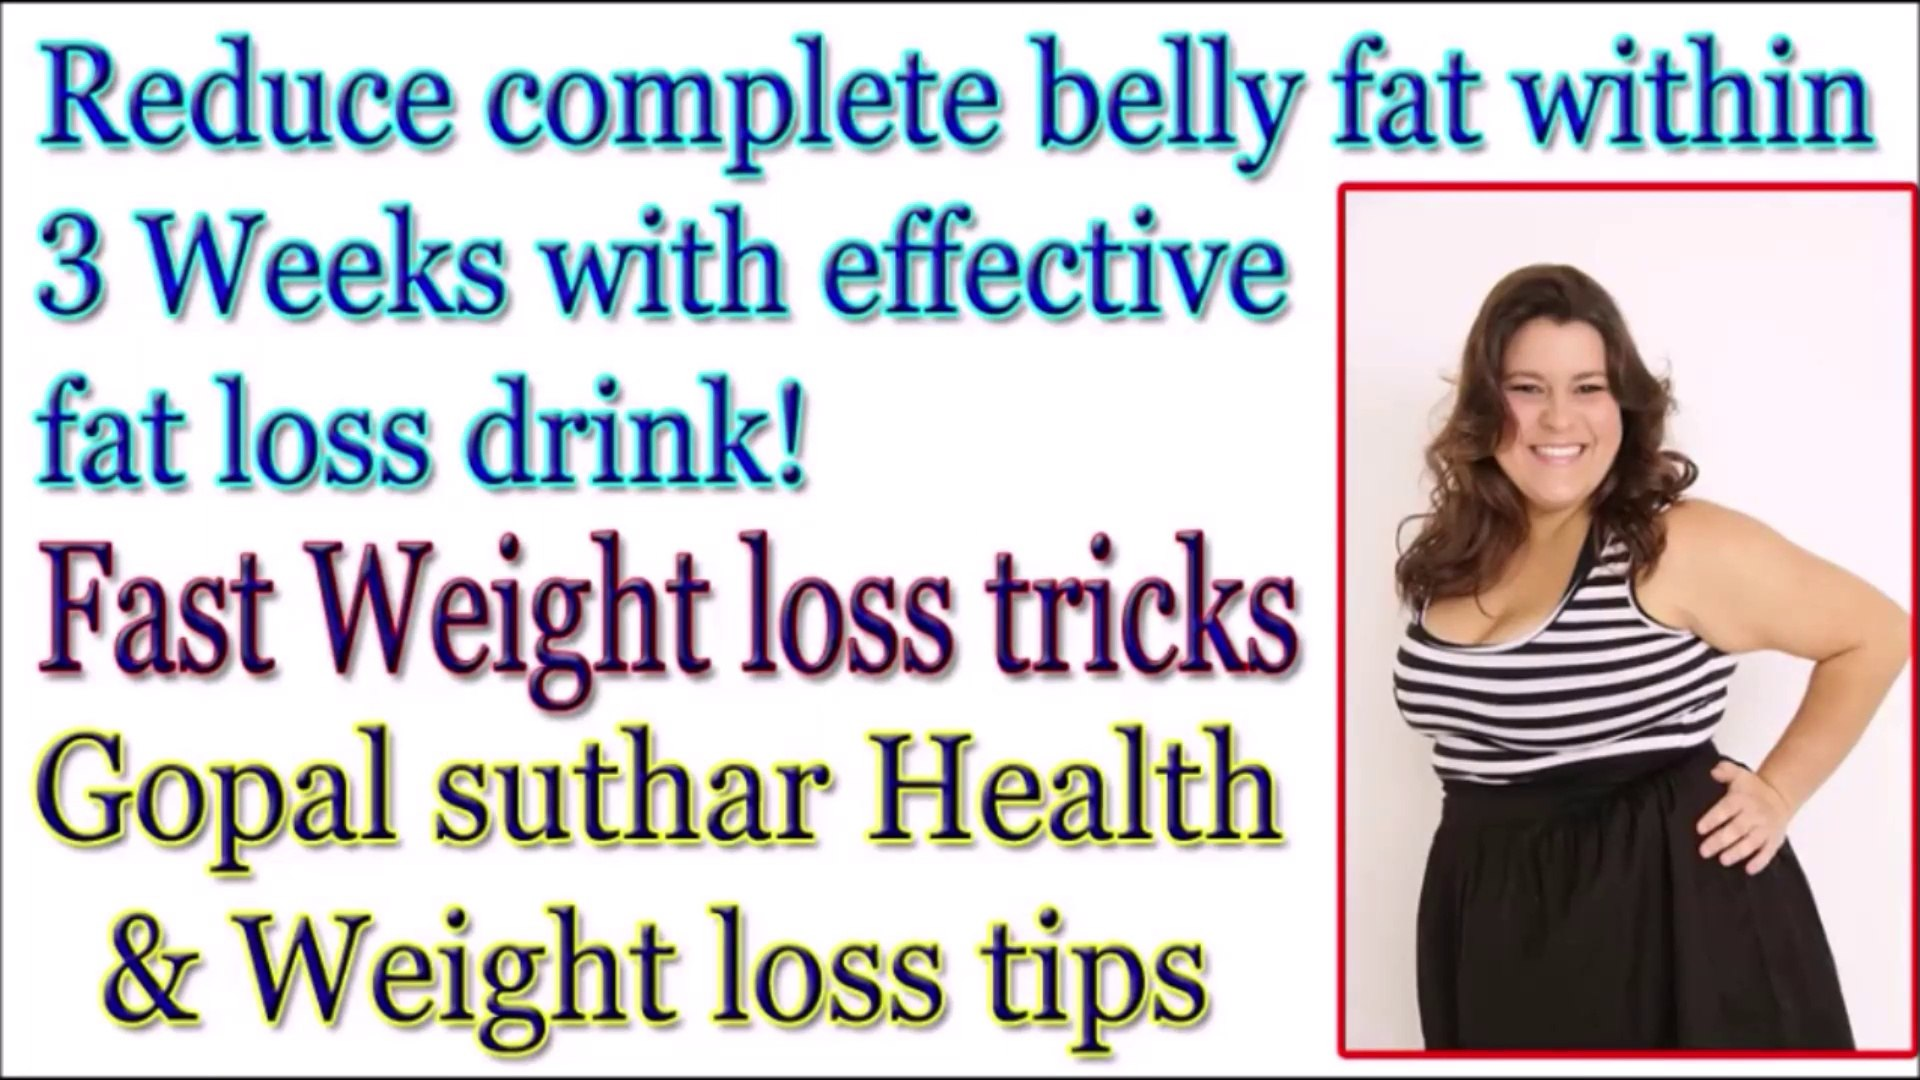 How to lose complete BELLY FAT within 3 Weeks with effective home-made FAT LOSS DRINK || 3 WEEKS bel